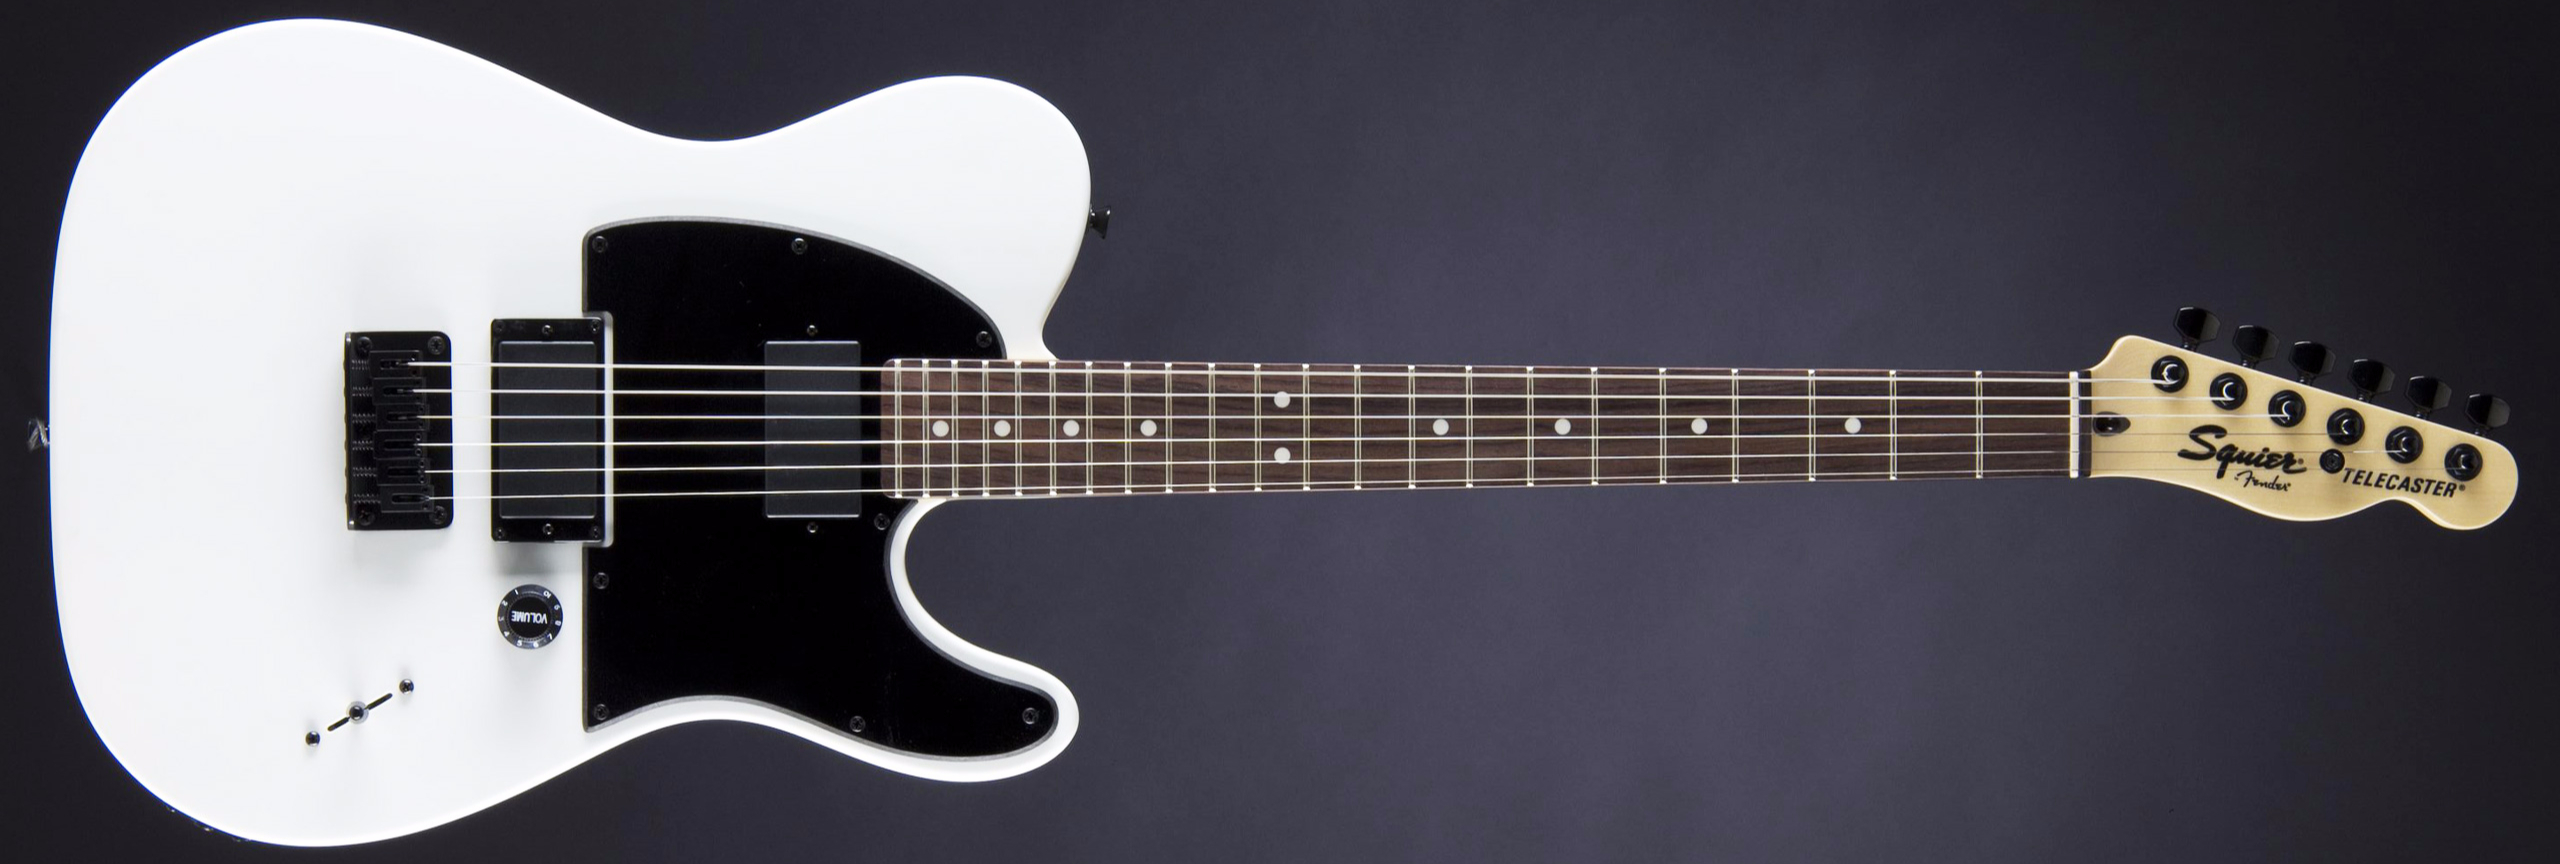 FENDER SQUIER Jim Root Telecaster RW Flat White